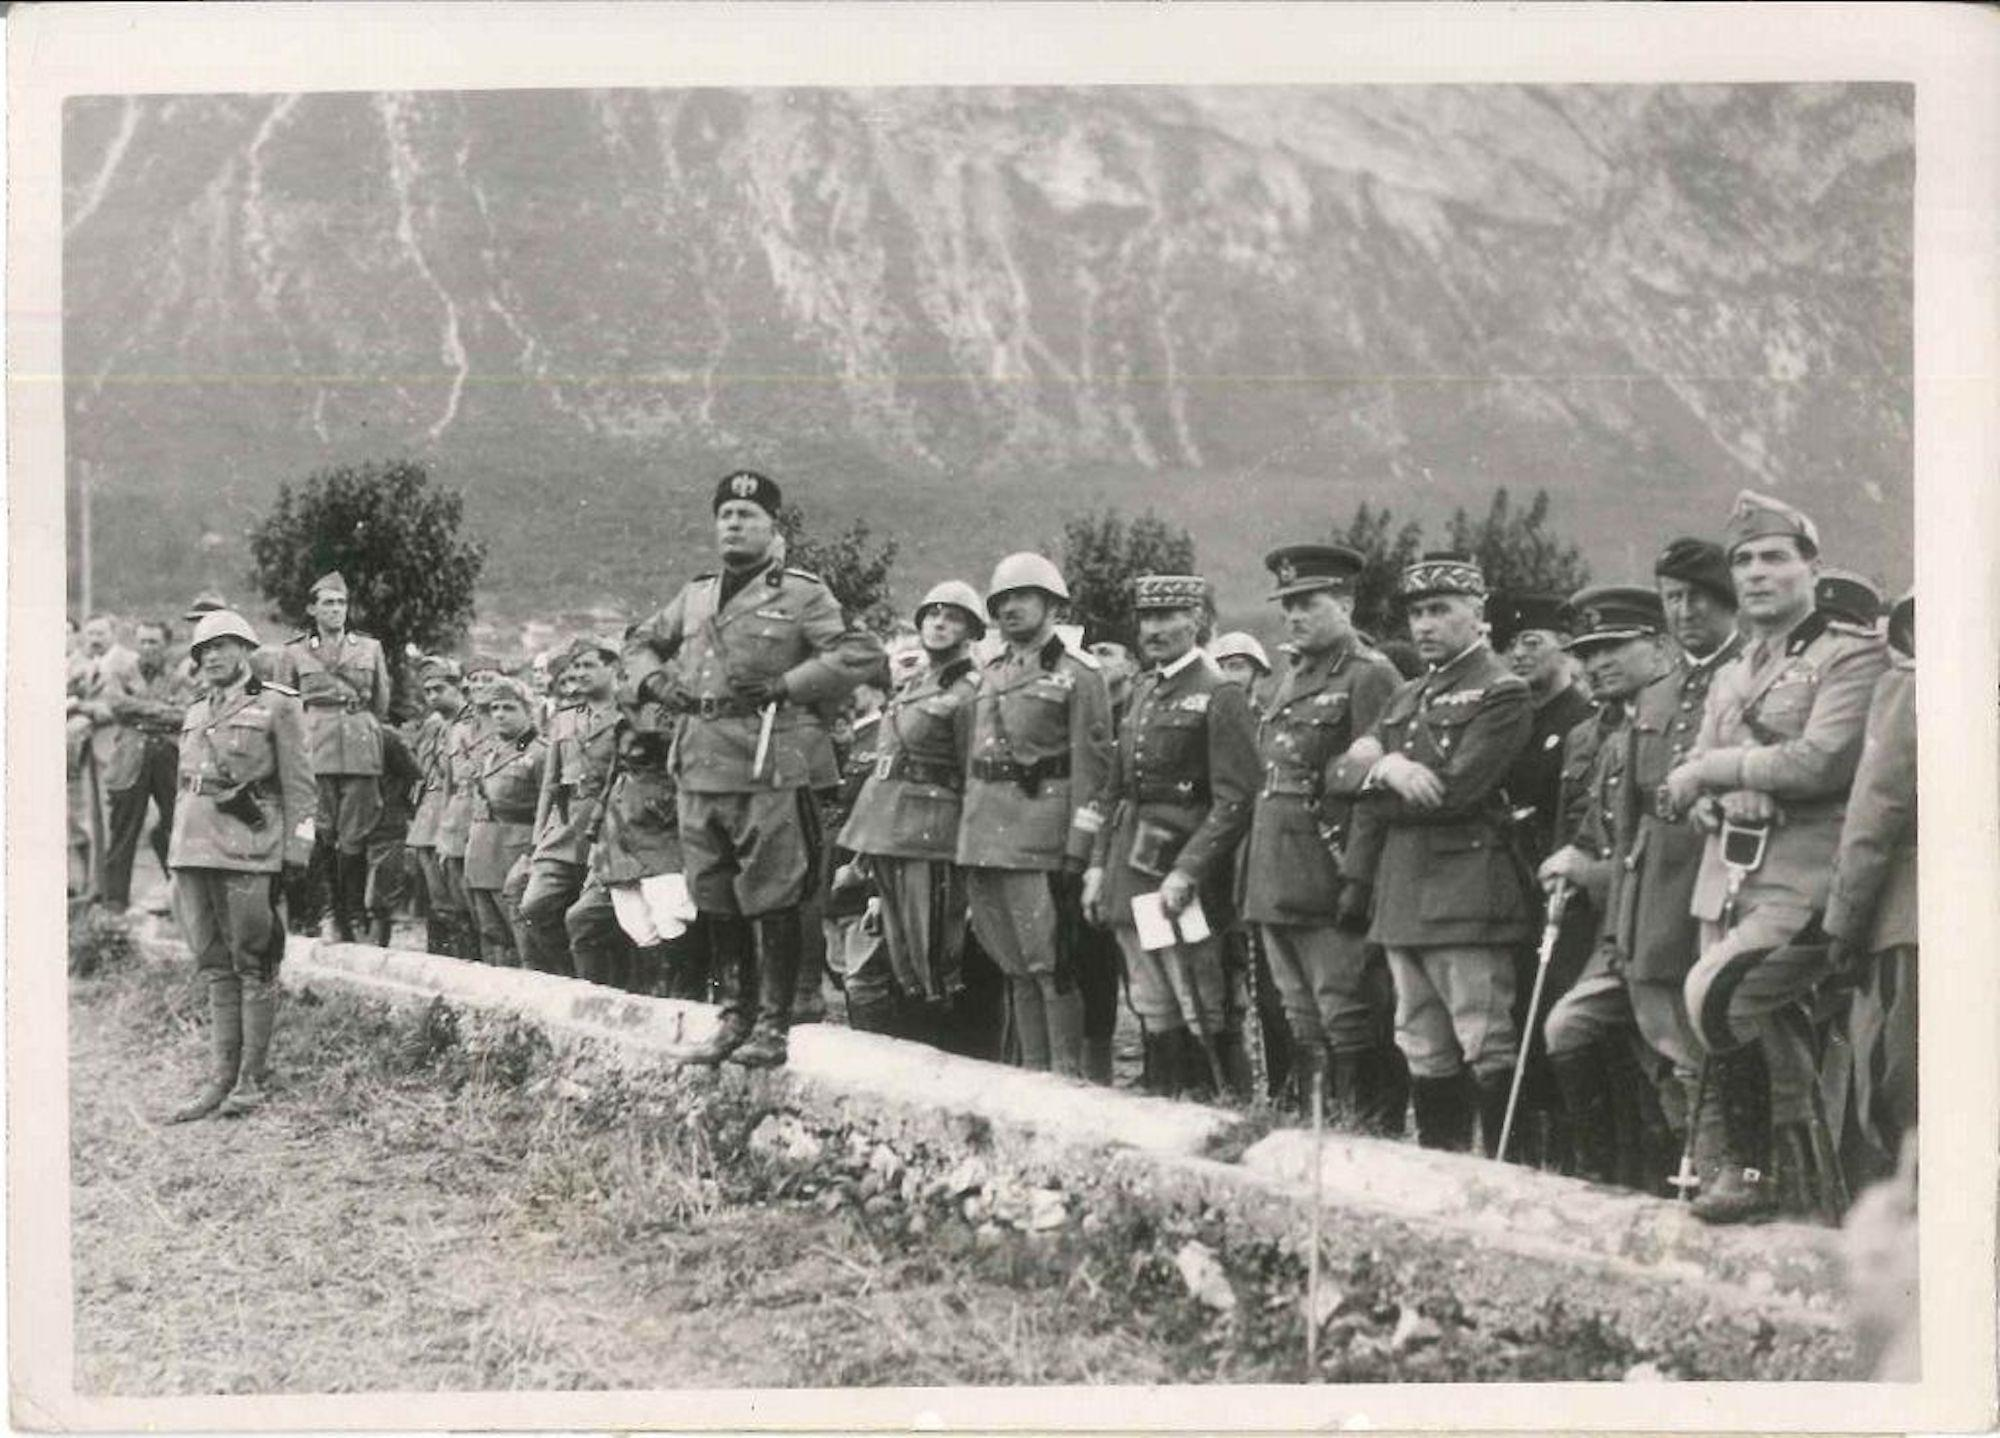 The manoeuvres of the Brenner - Original Vintage Photo - 1935